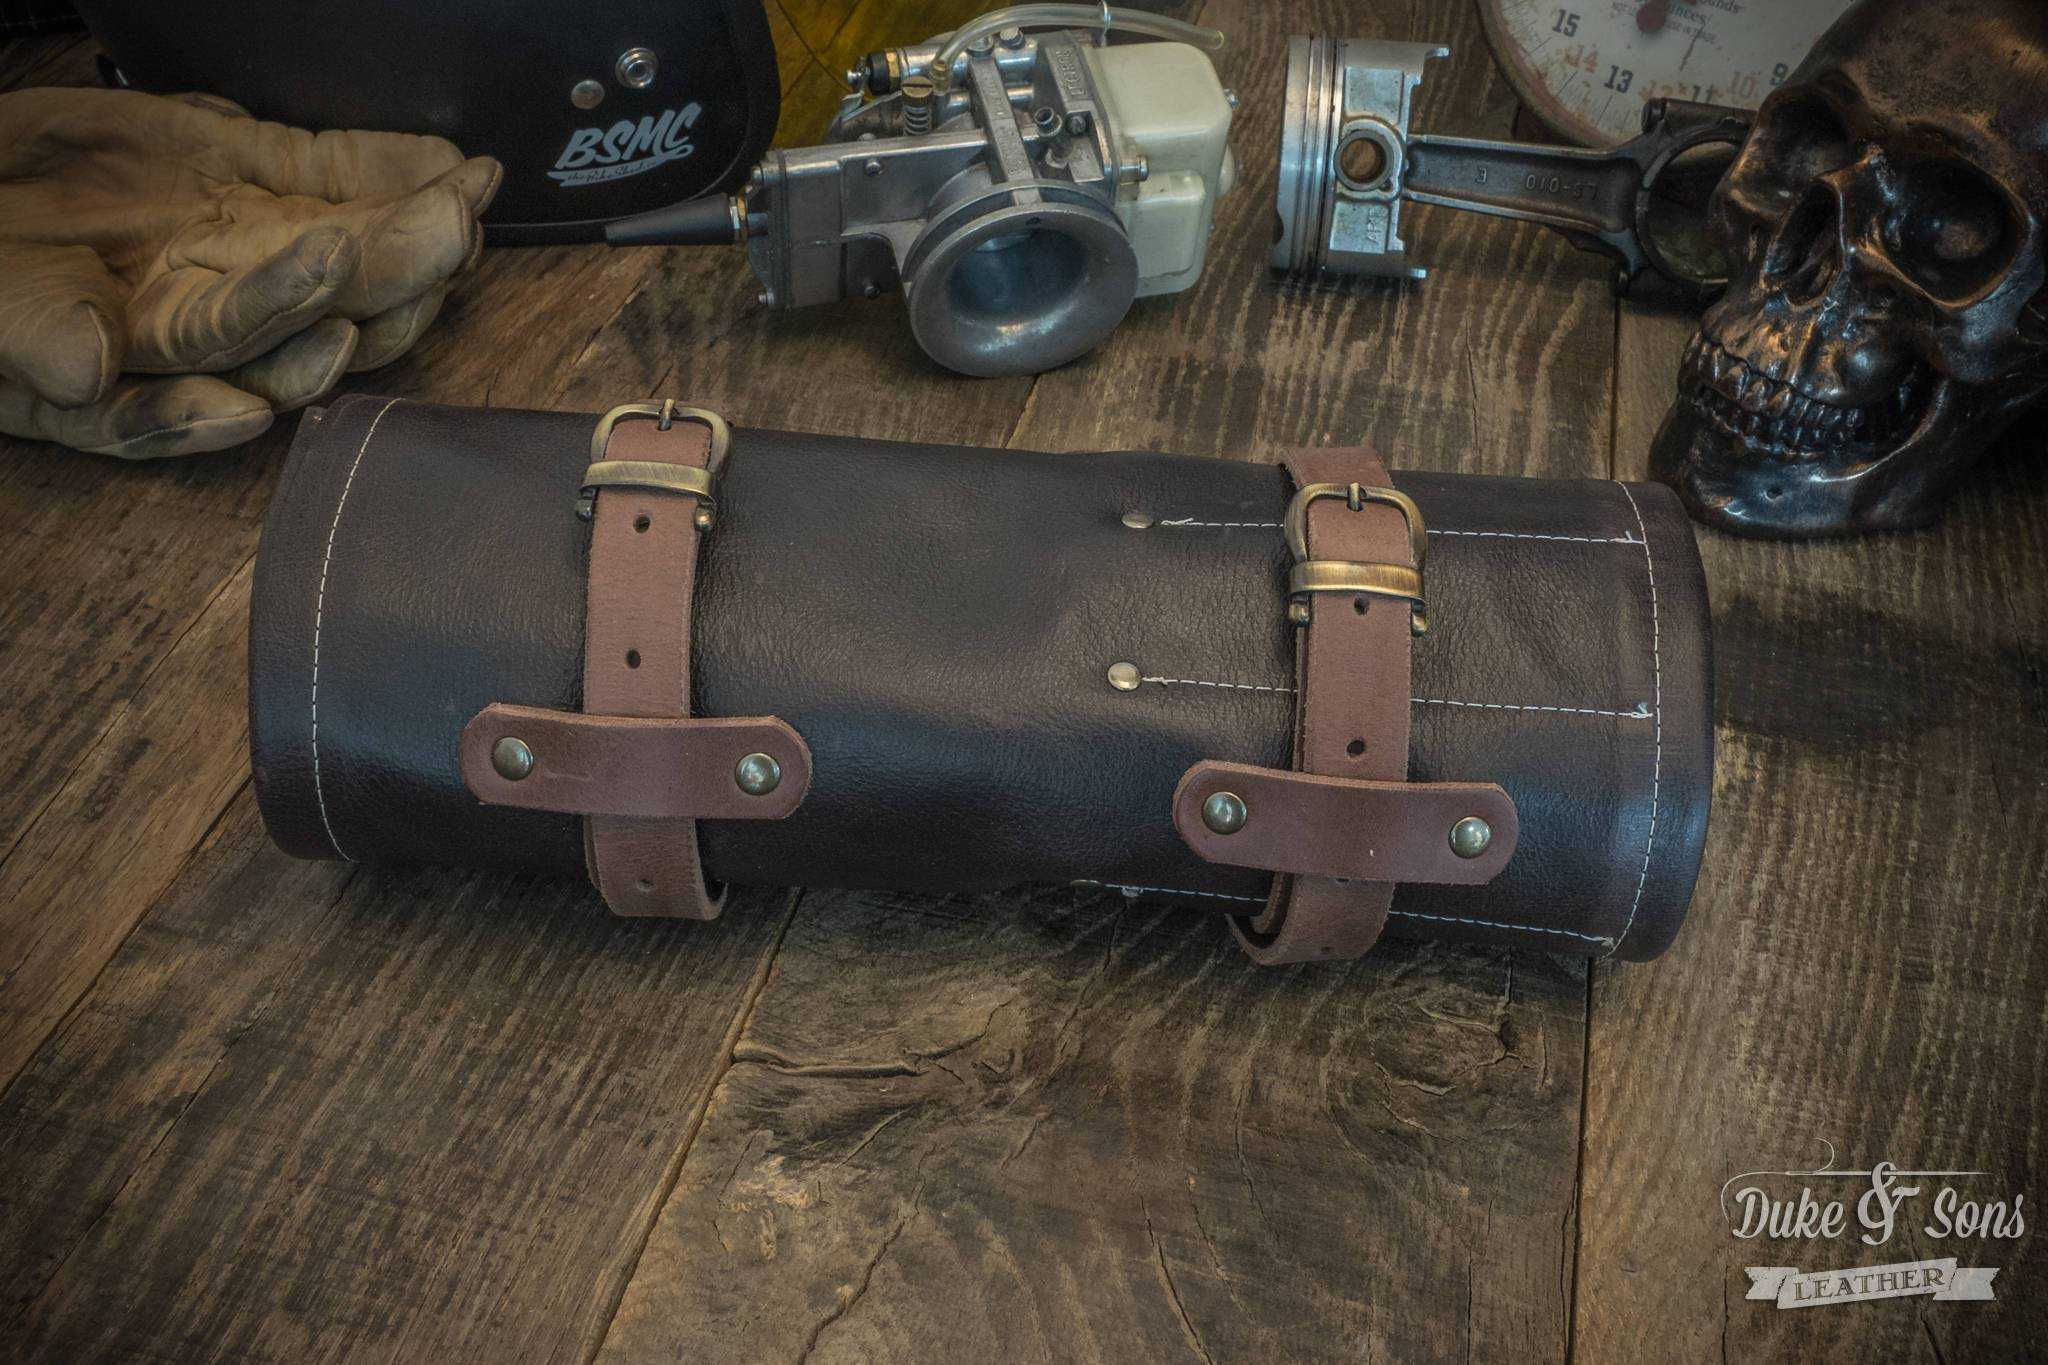 Tool Roll, brown leather, with 2 leather straps. | Duke & Sons Leather